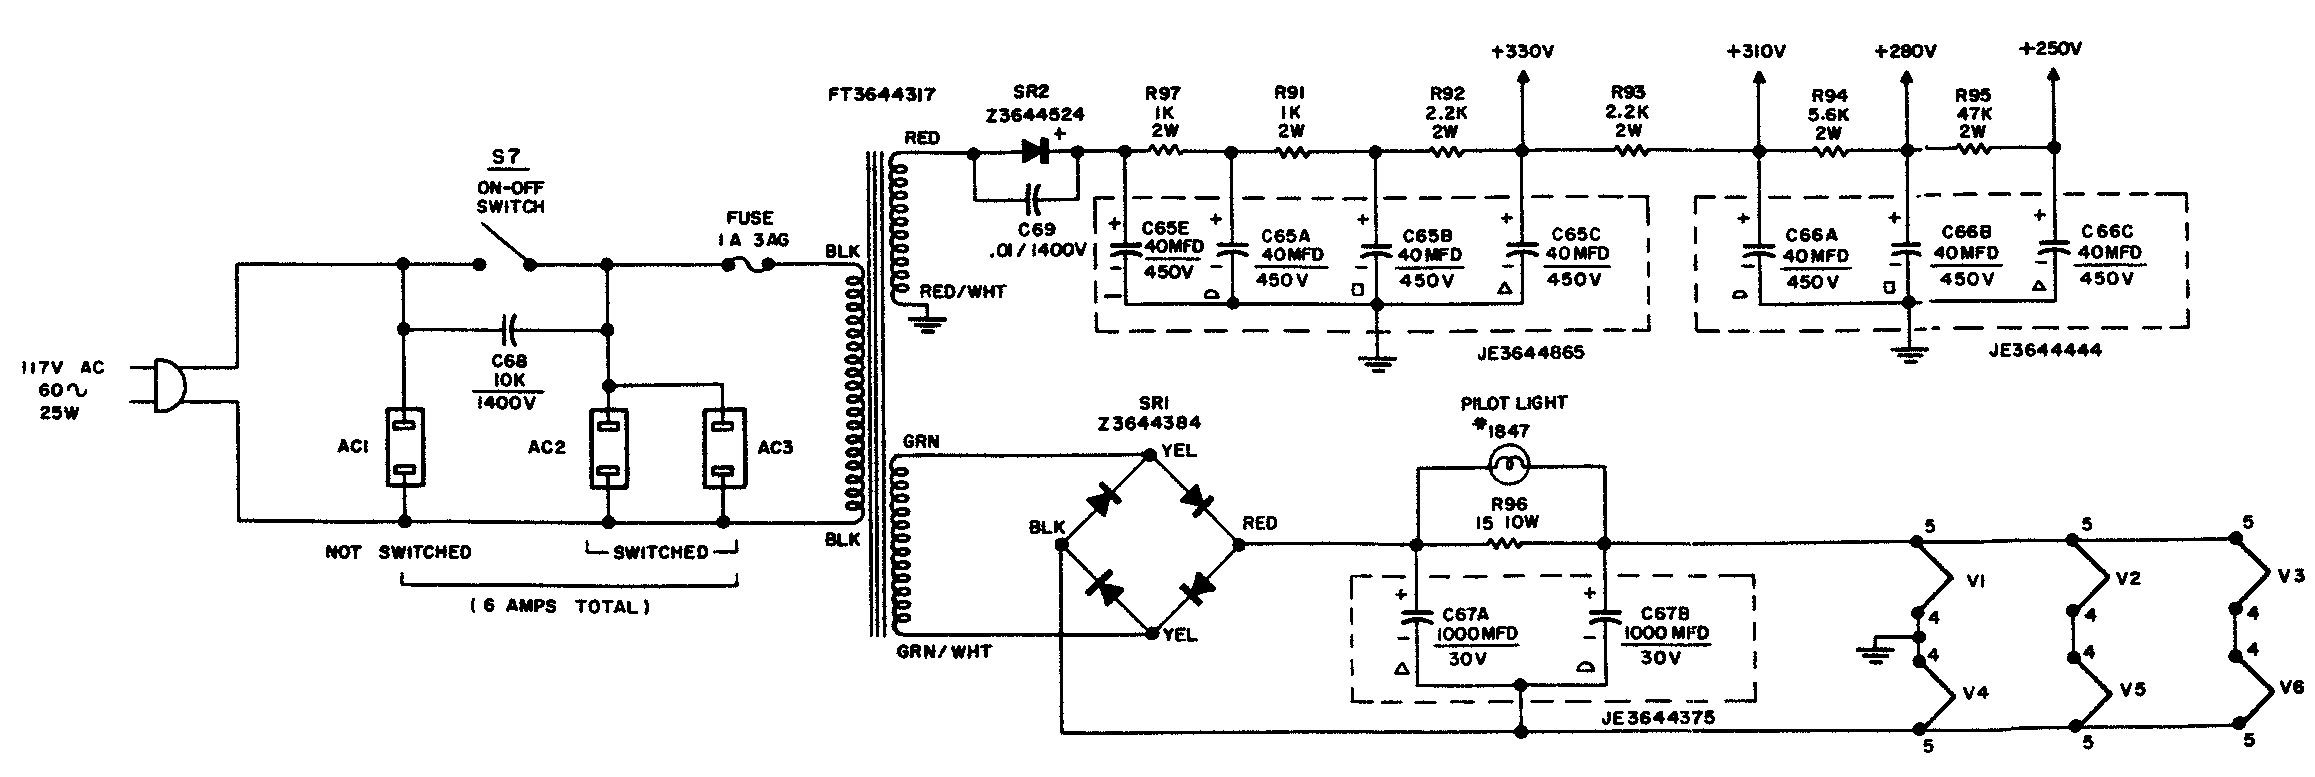 Citation Click For Full Schematic Diagram Here The Iv Power Supply